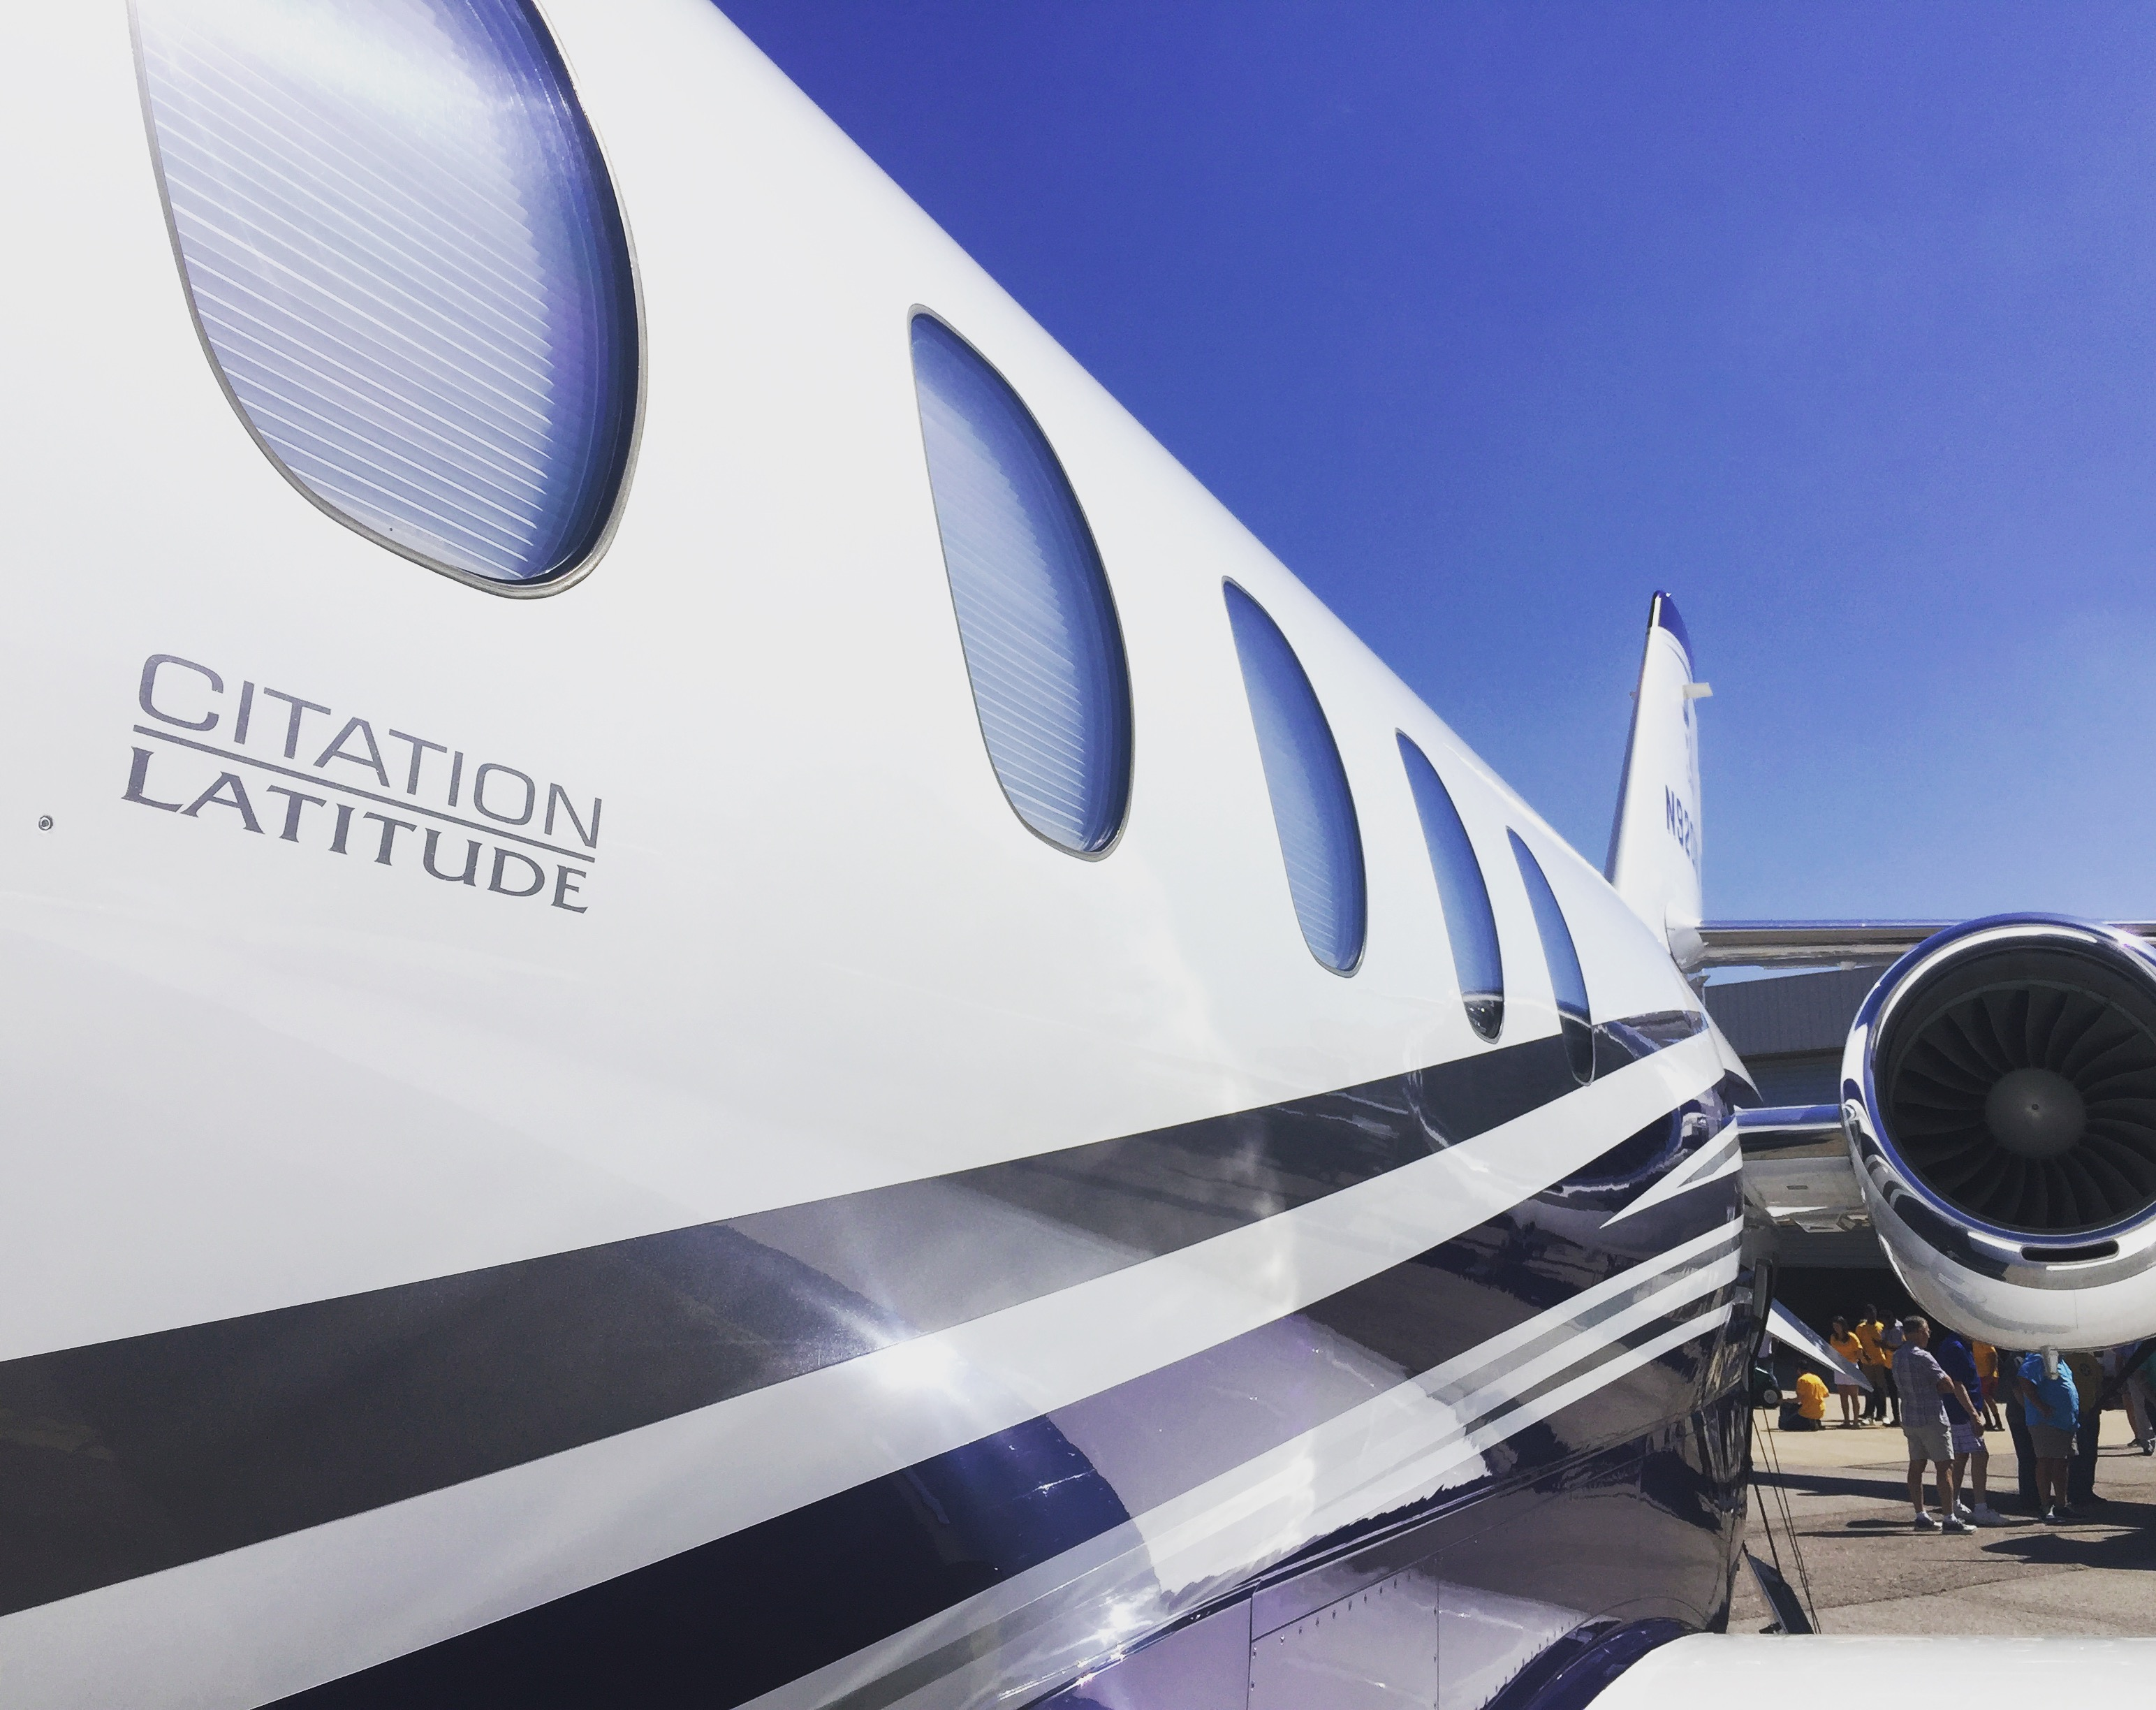 Citation Latitude - Altivation Aircraft